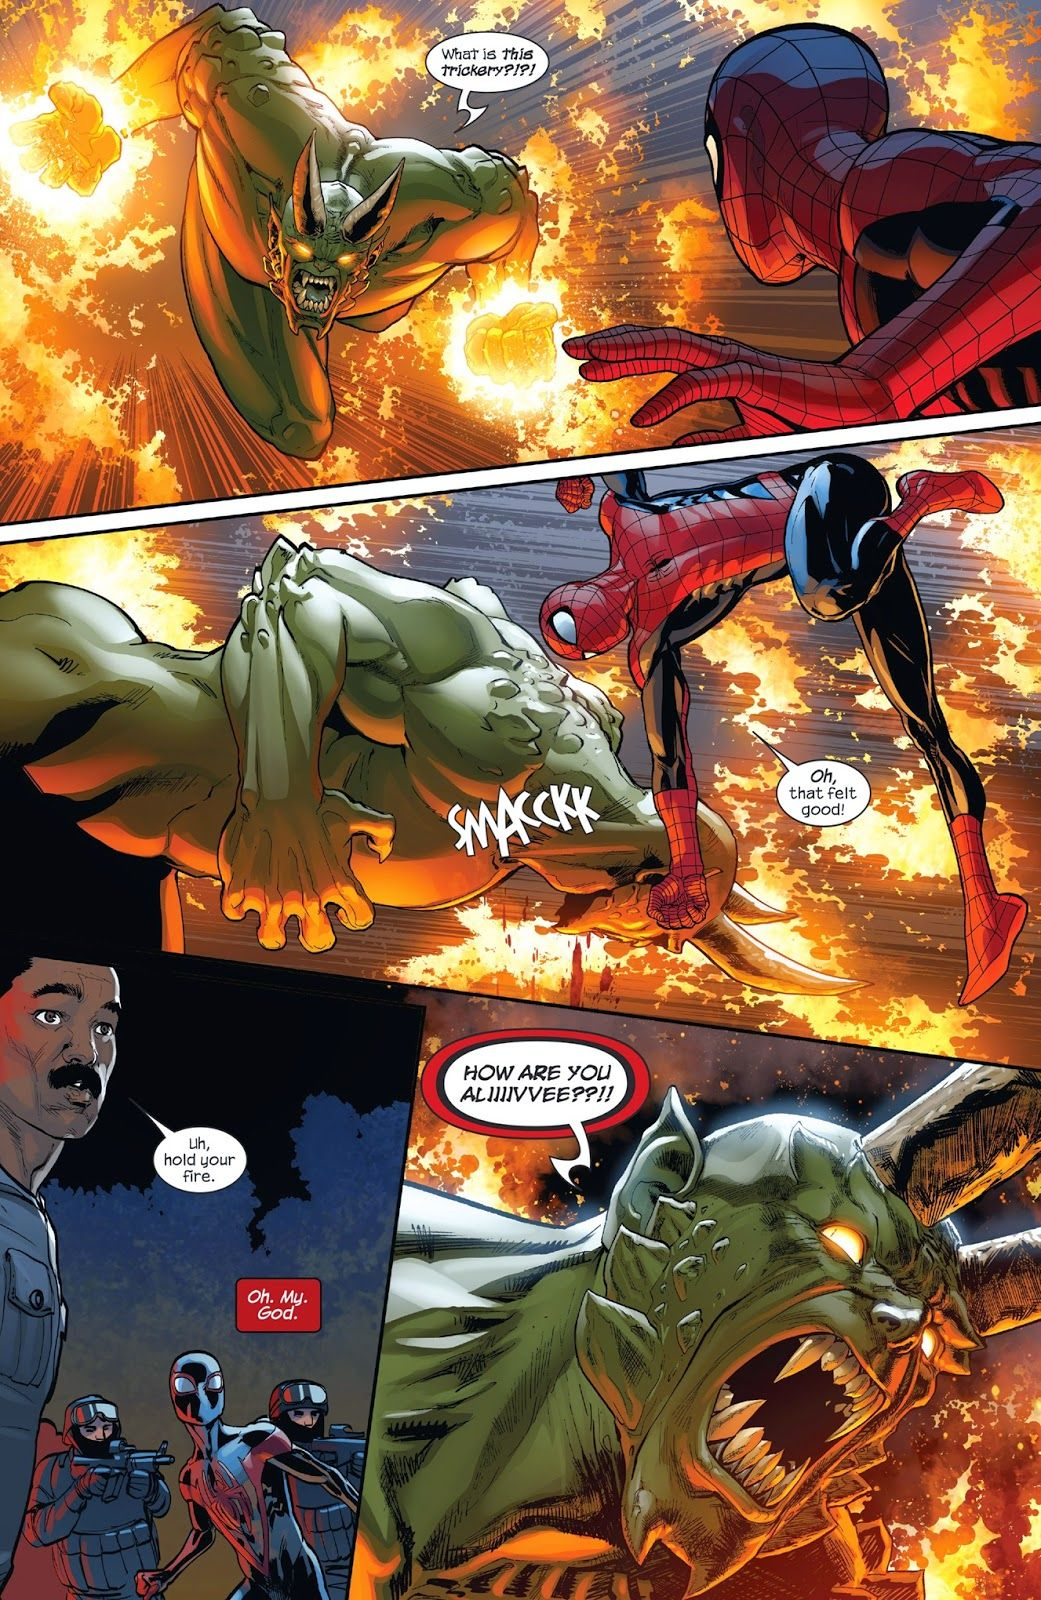 House of m green goblin - Peter Parker Teams Up With Miles Morales To Take Down A Resurrected Green Goblin In Miles